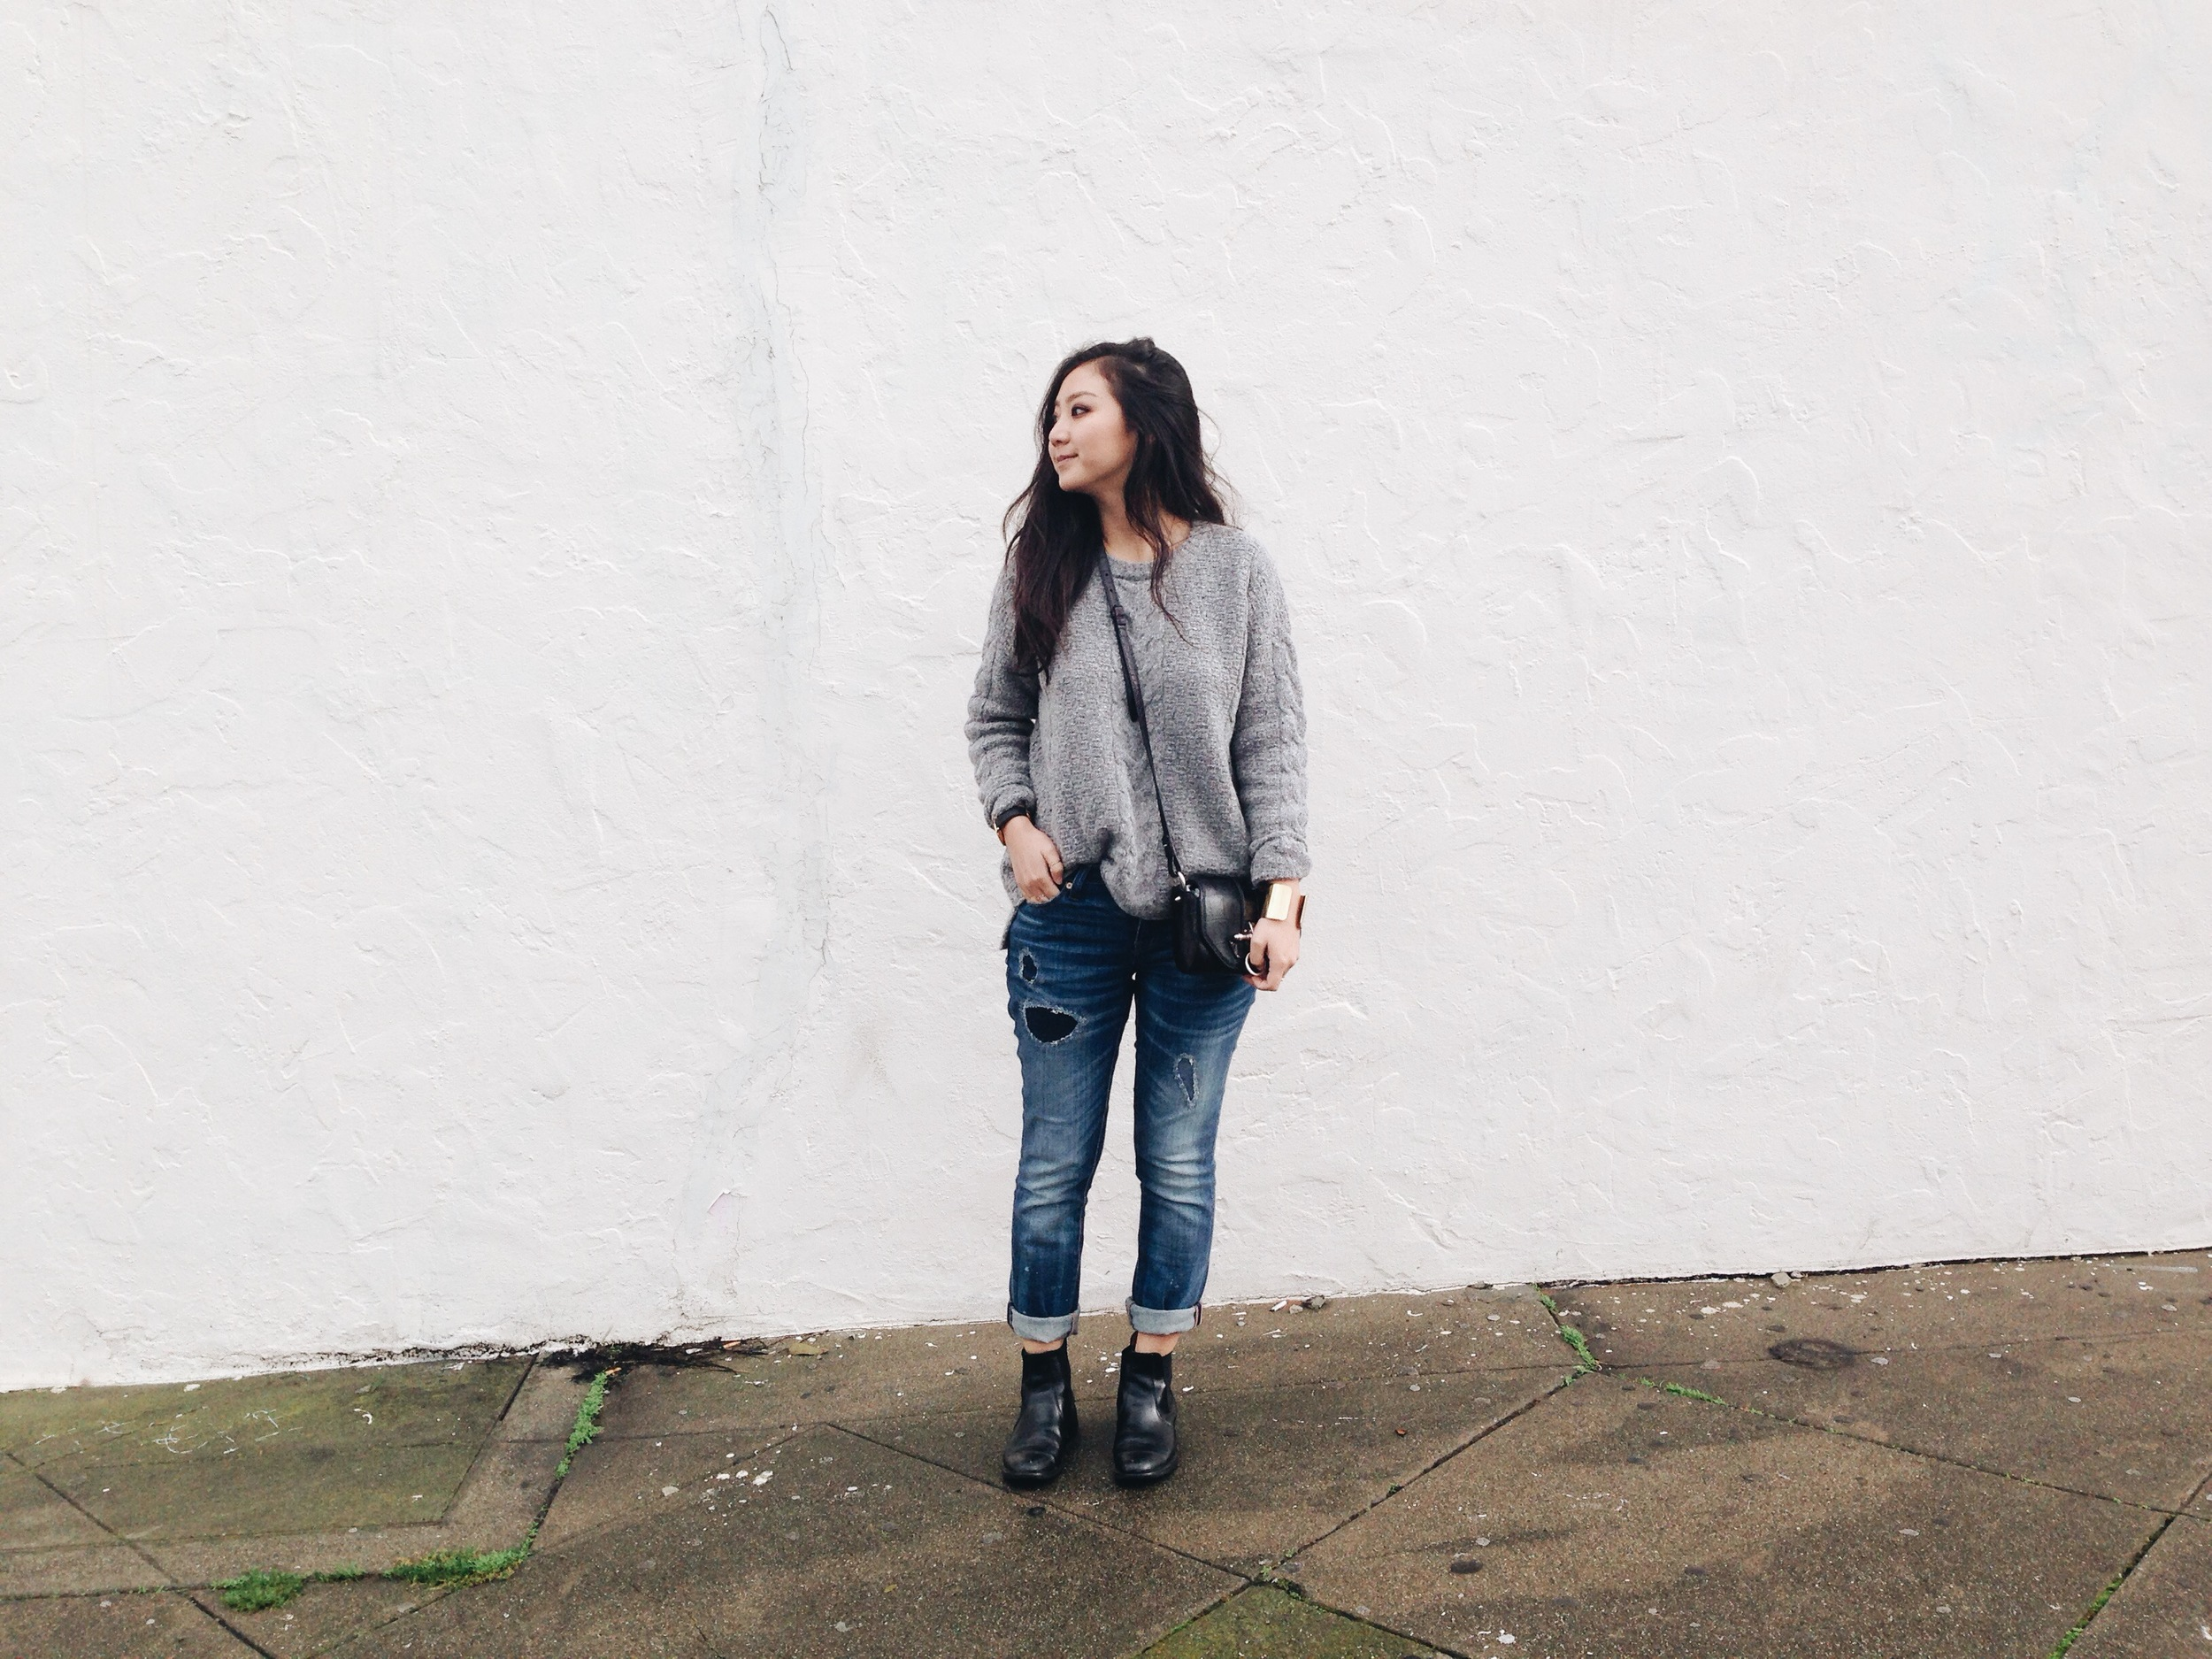 MADEWELL   cable pullover knit  / MADEWELL  boyfriend jeans  / CHELSEA BOOTS (via  Beijing's Silk Market ) / GIVENCHY  Obsedia bag